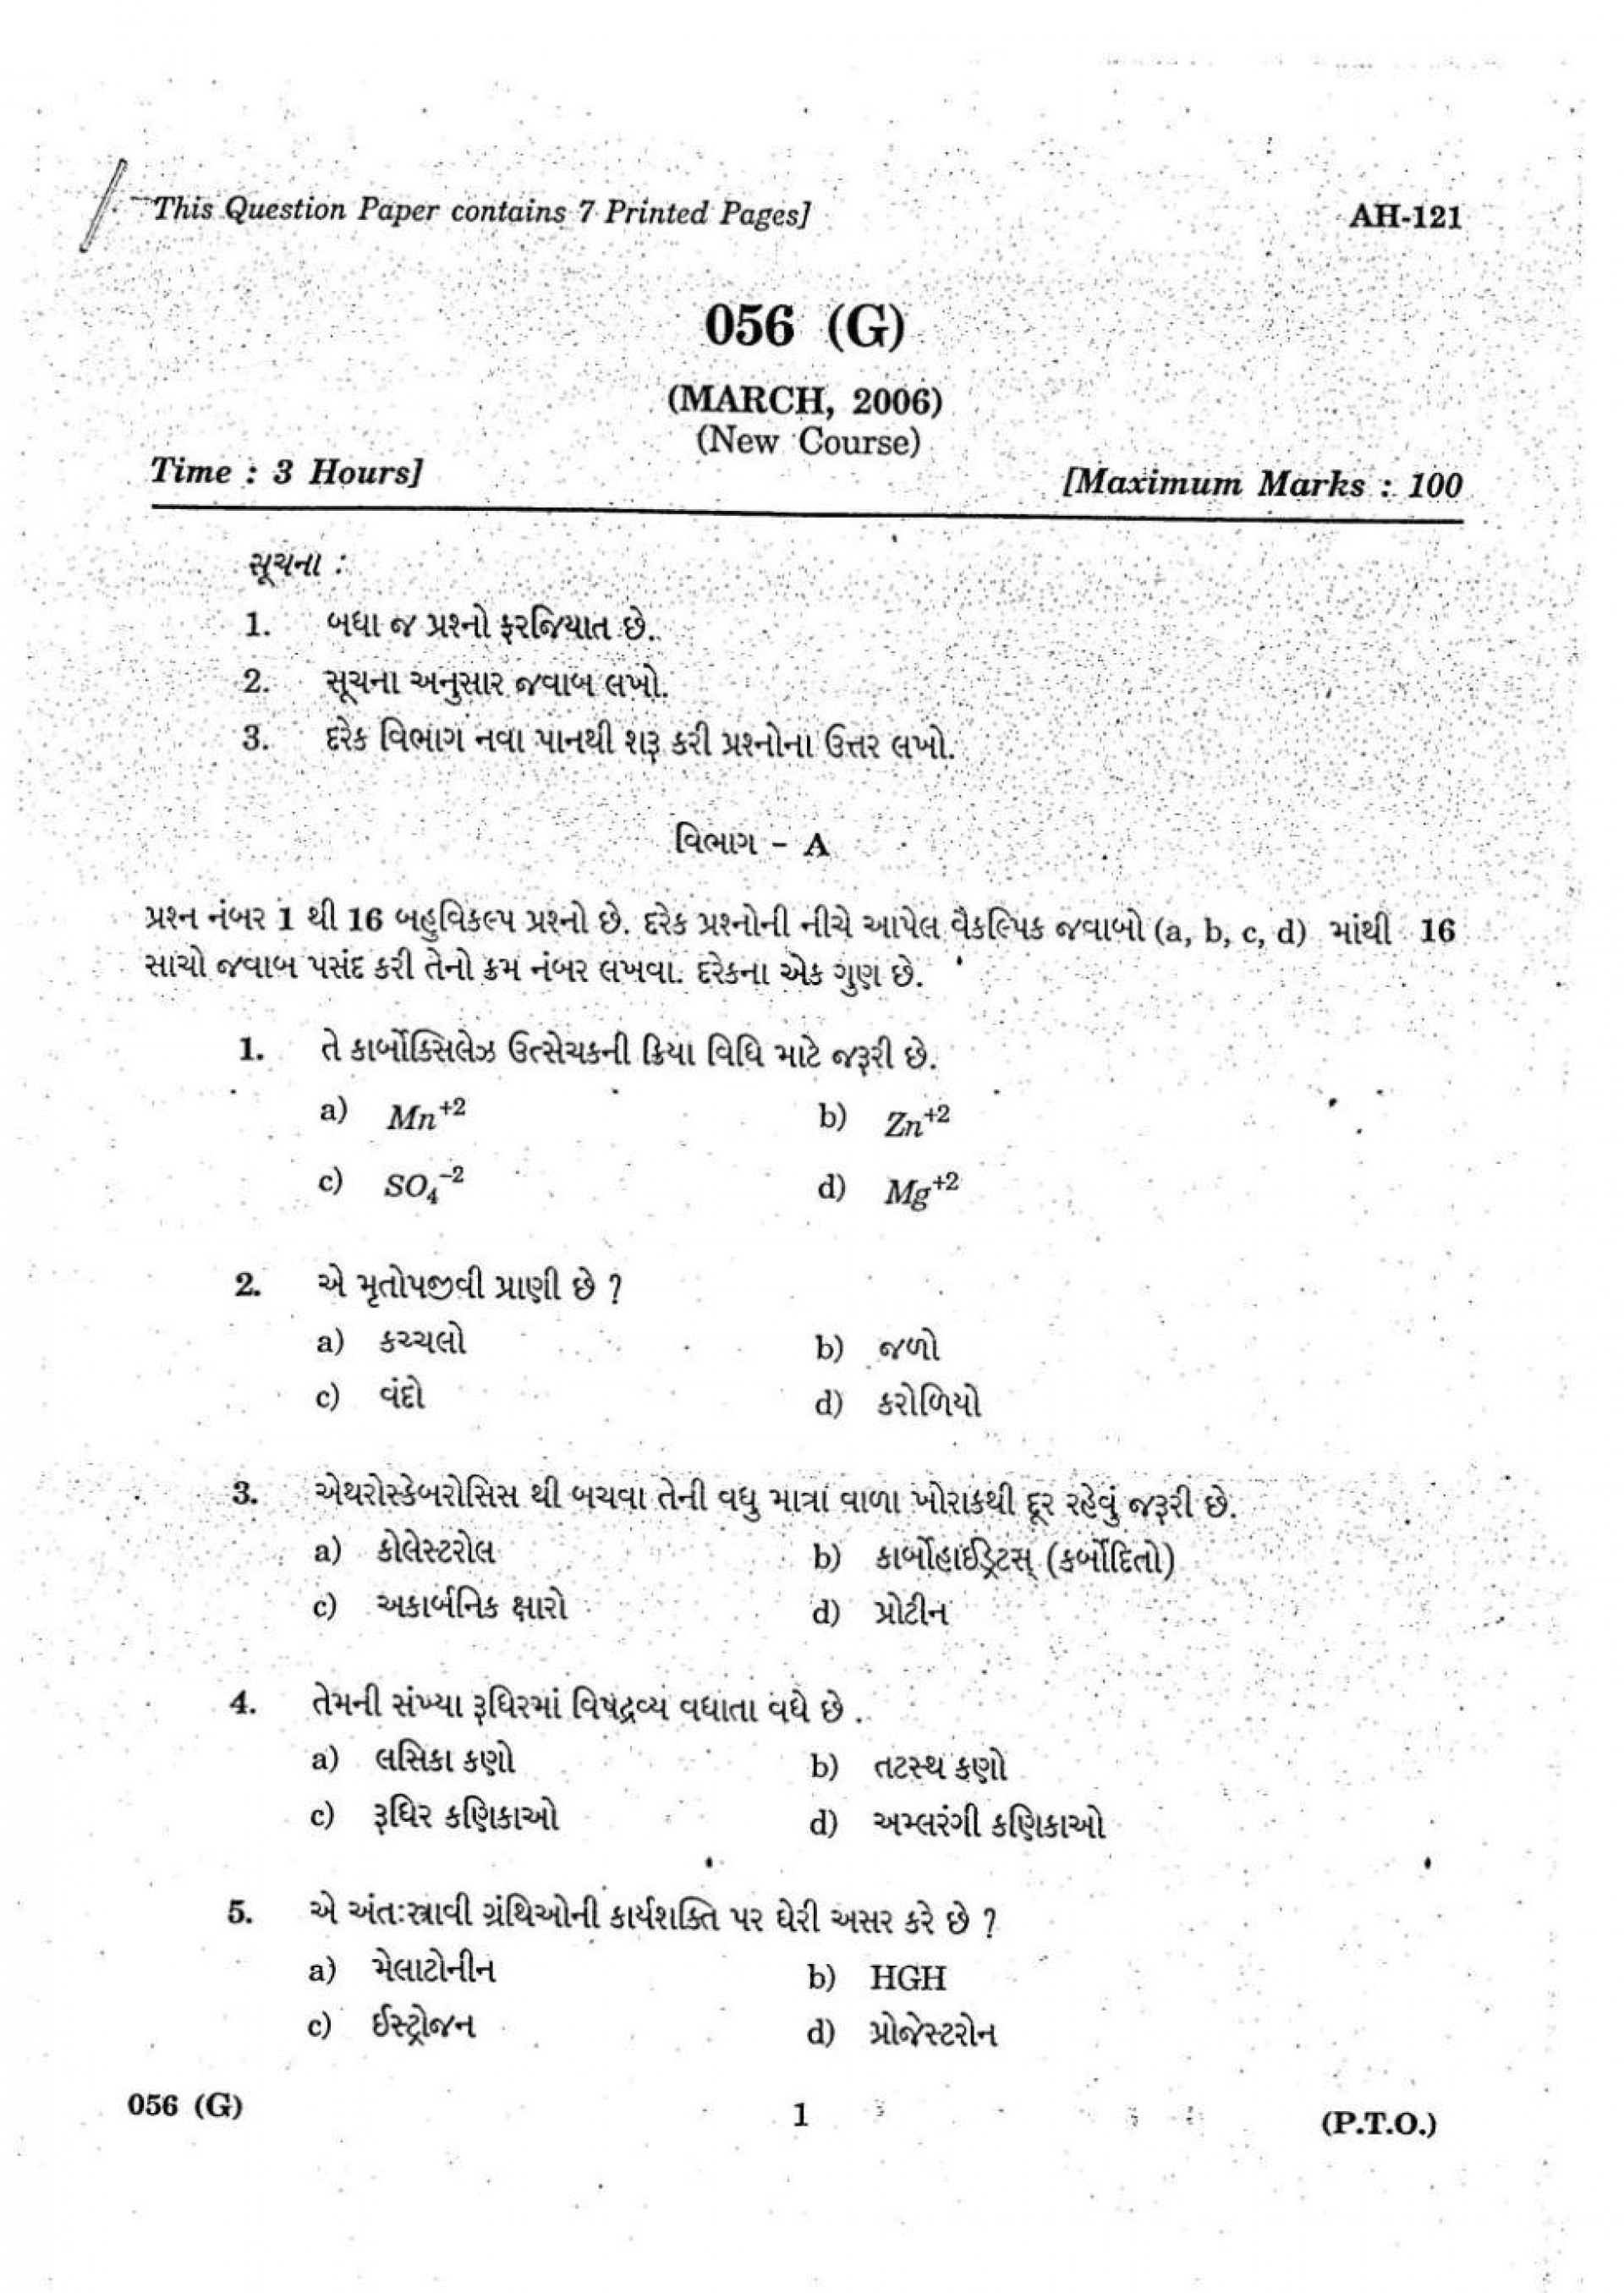 007 Edgar Allan Poe Essay Topics Science For Essays Gujarati Board 11th Question Pa On Style Of Writing Stirring The Raven Titles Explanation 1920